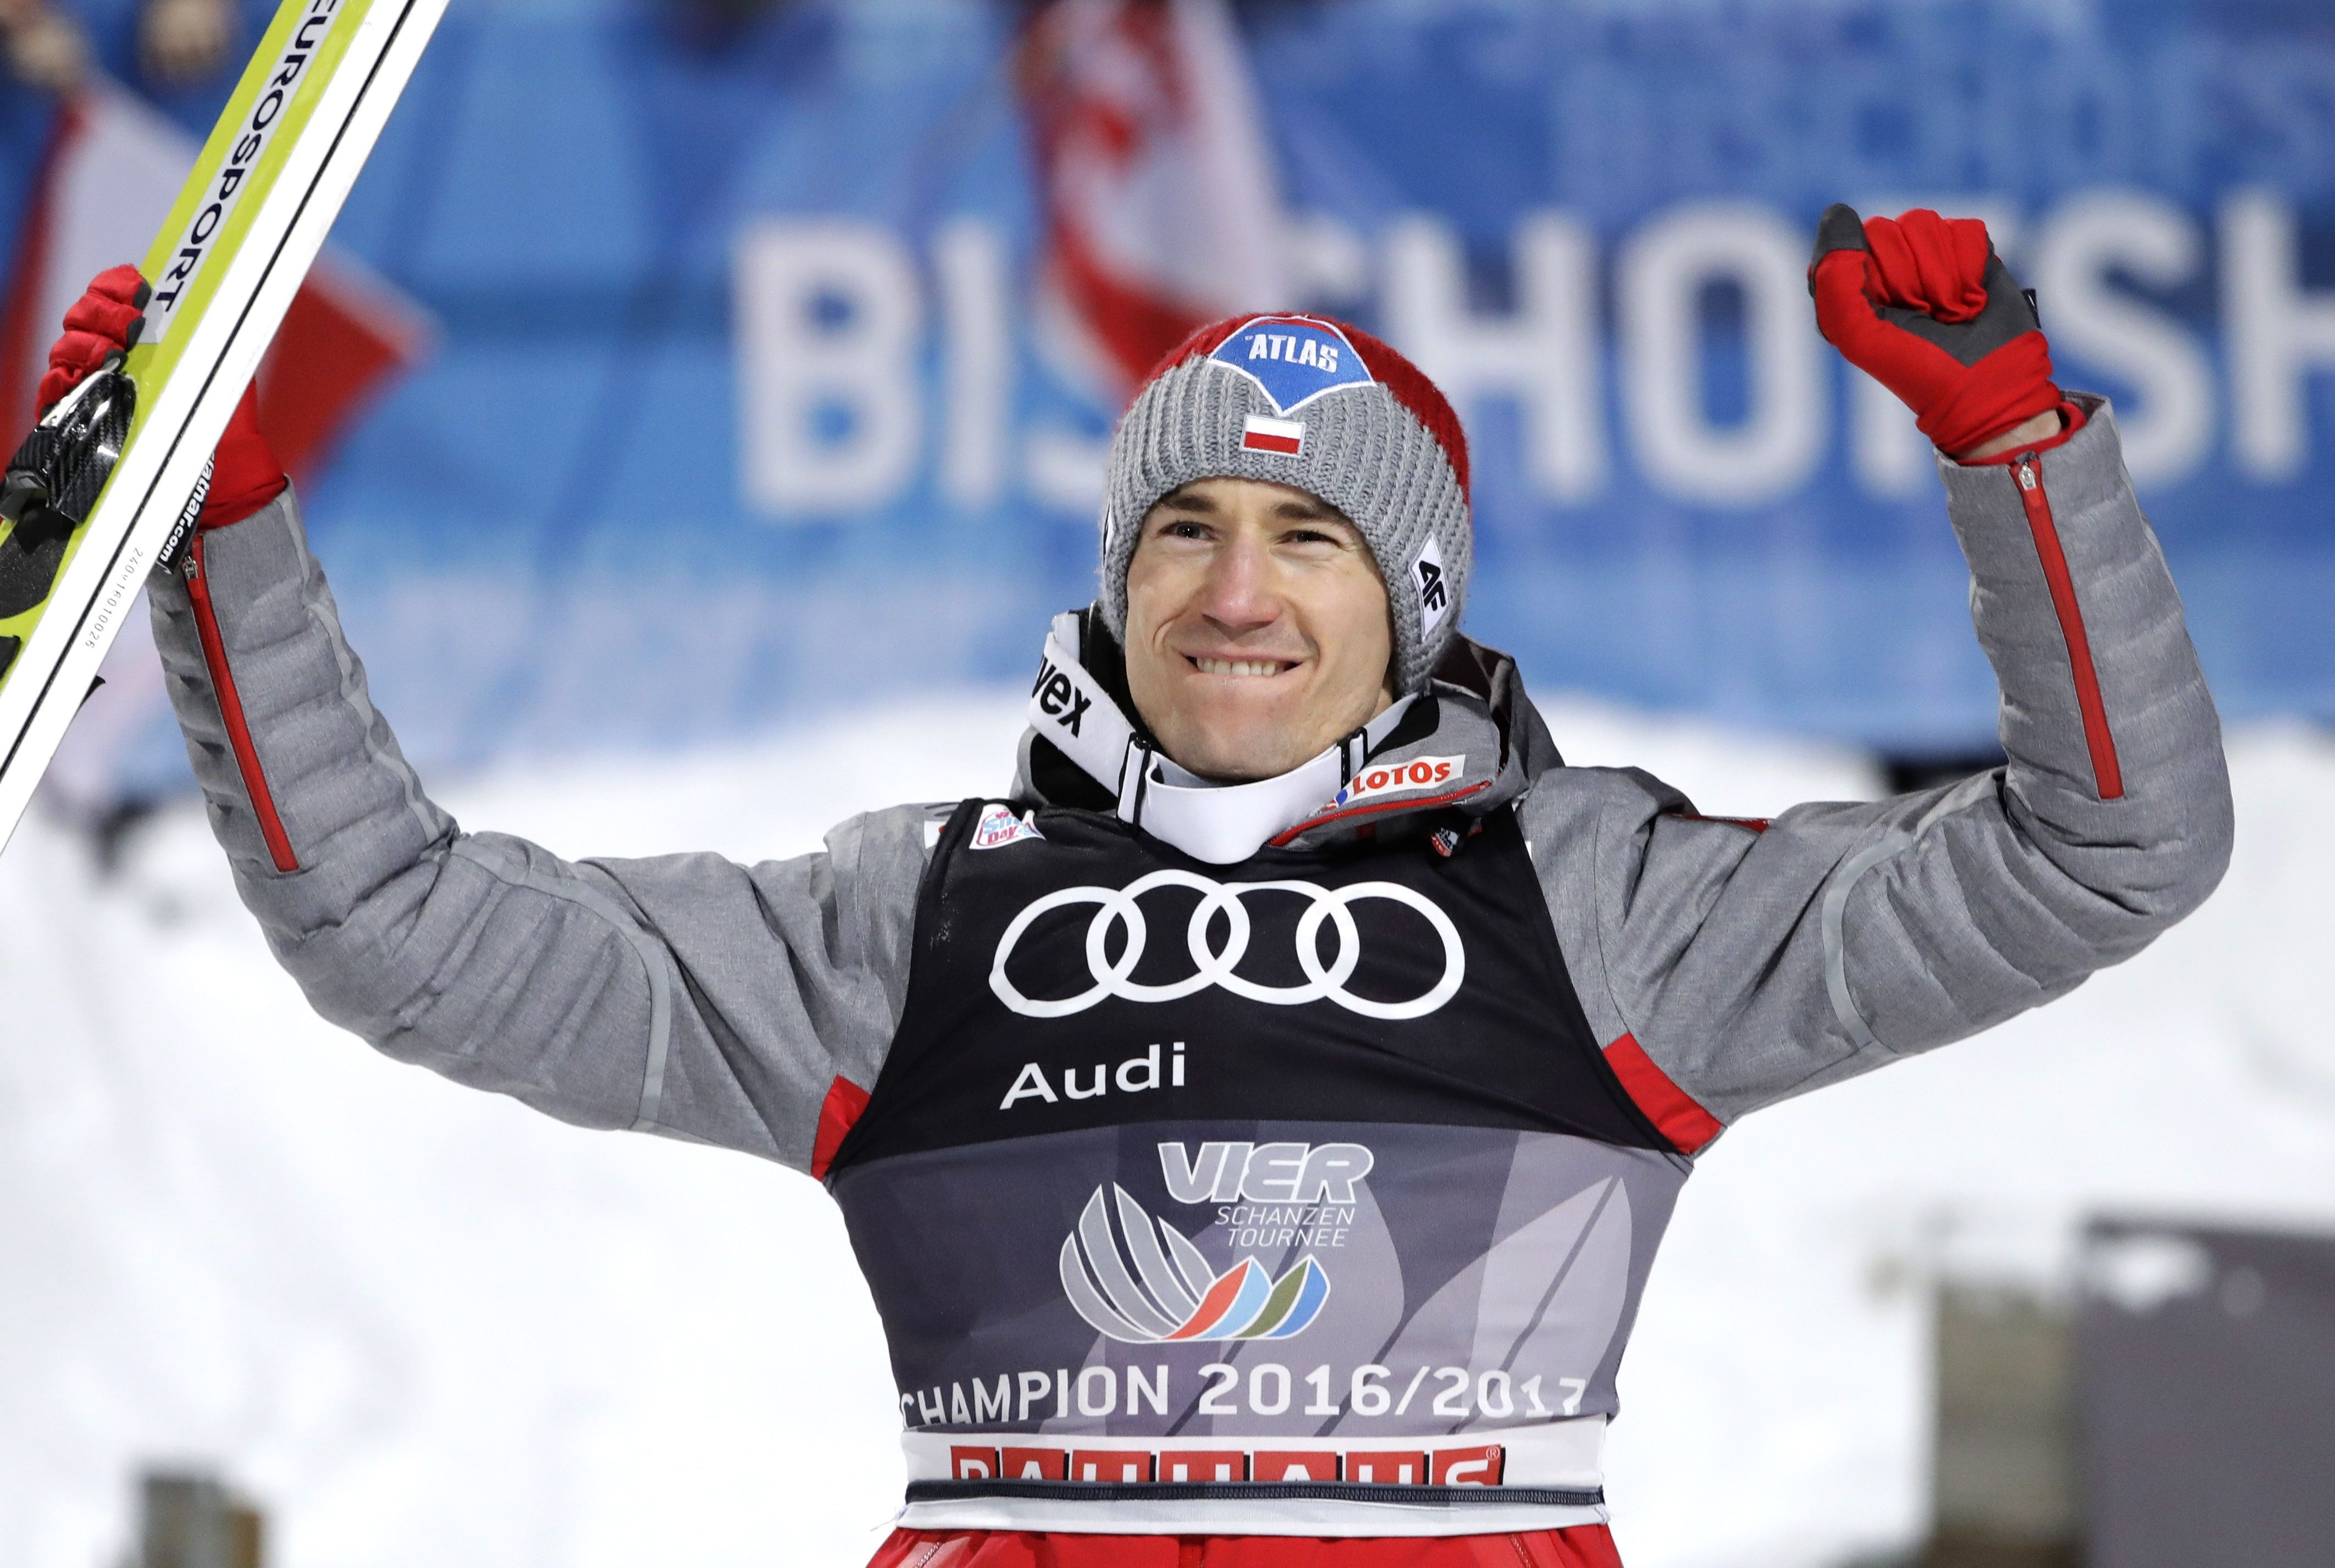 4248x2853 - Kamil Stoch Wallpapers 3